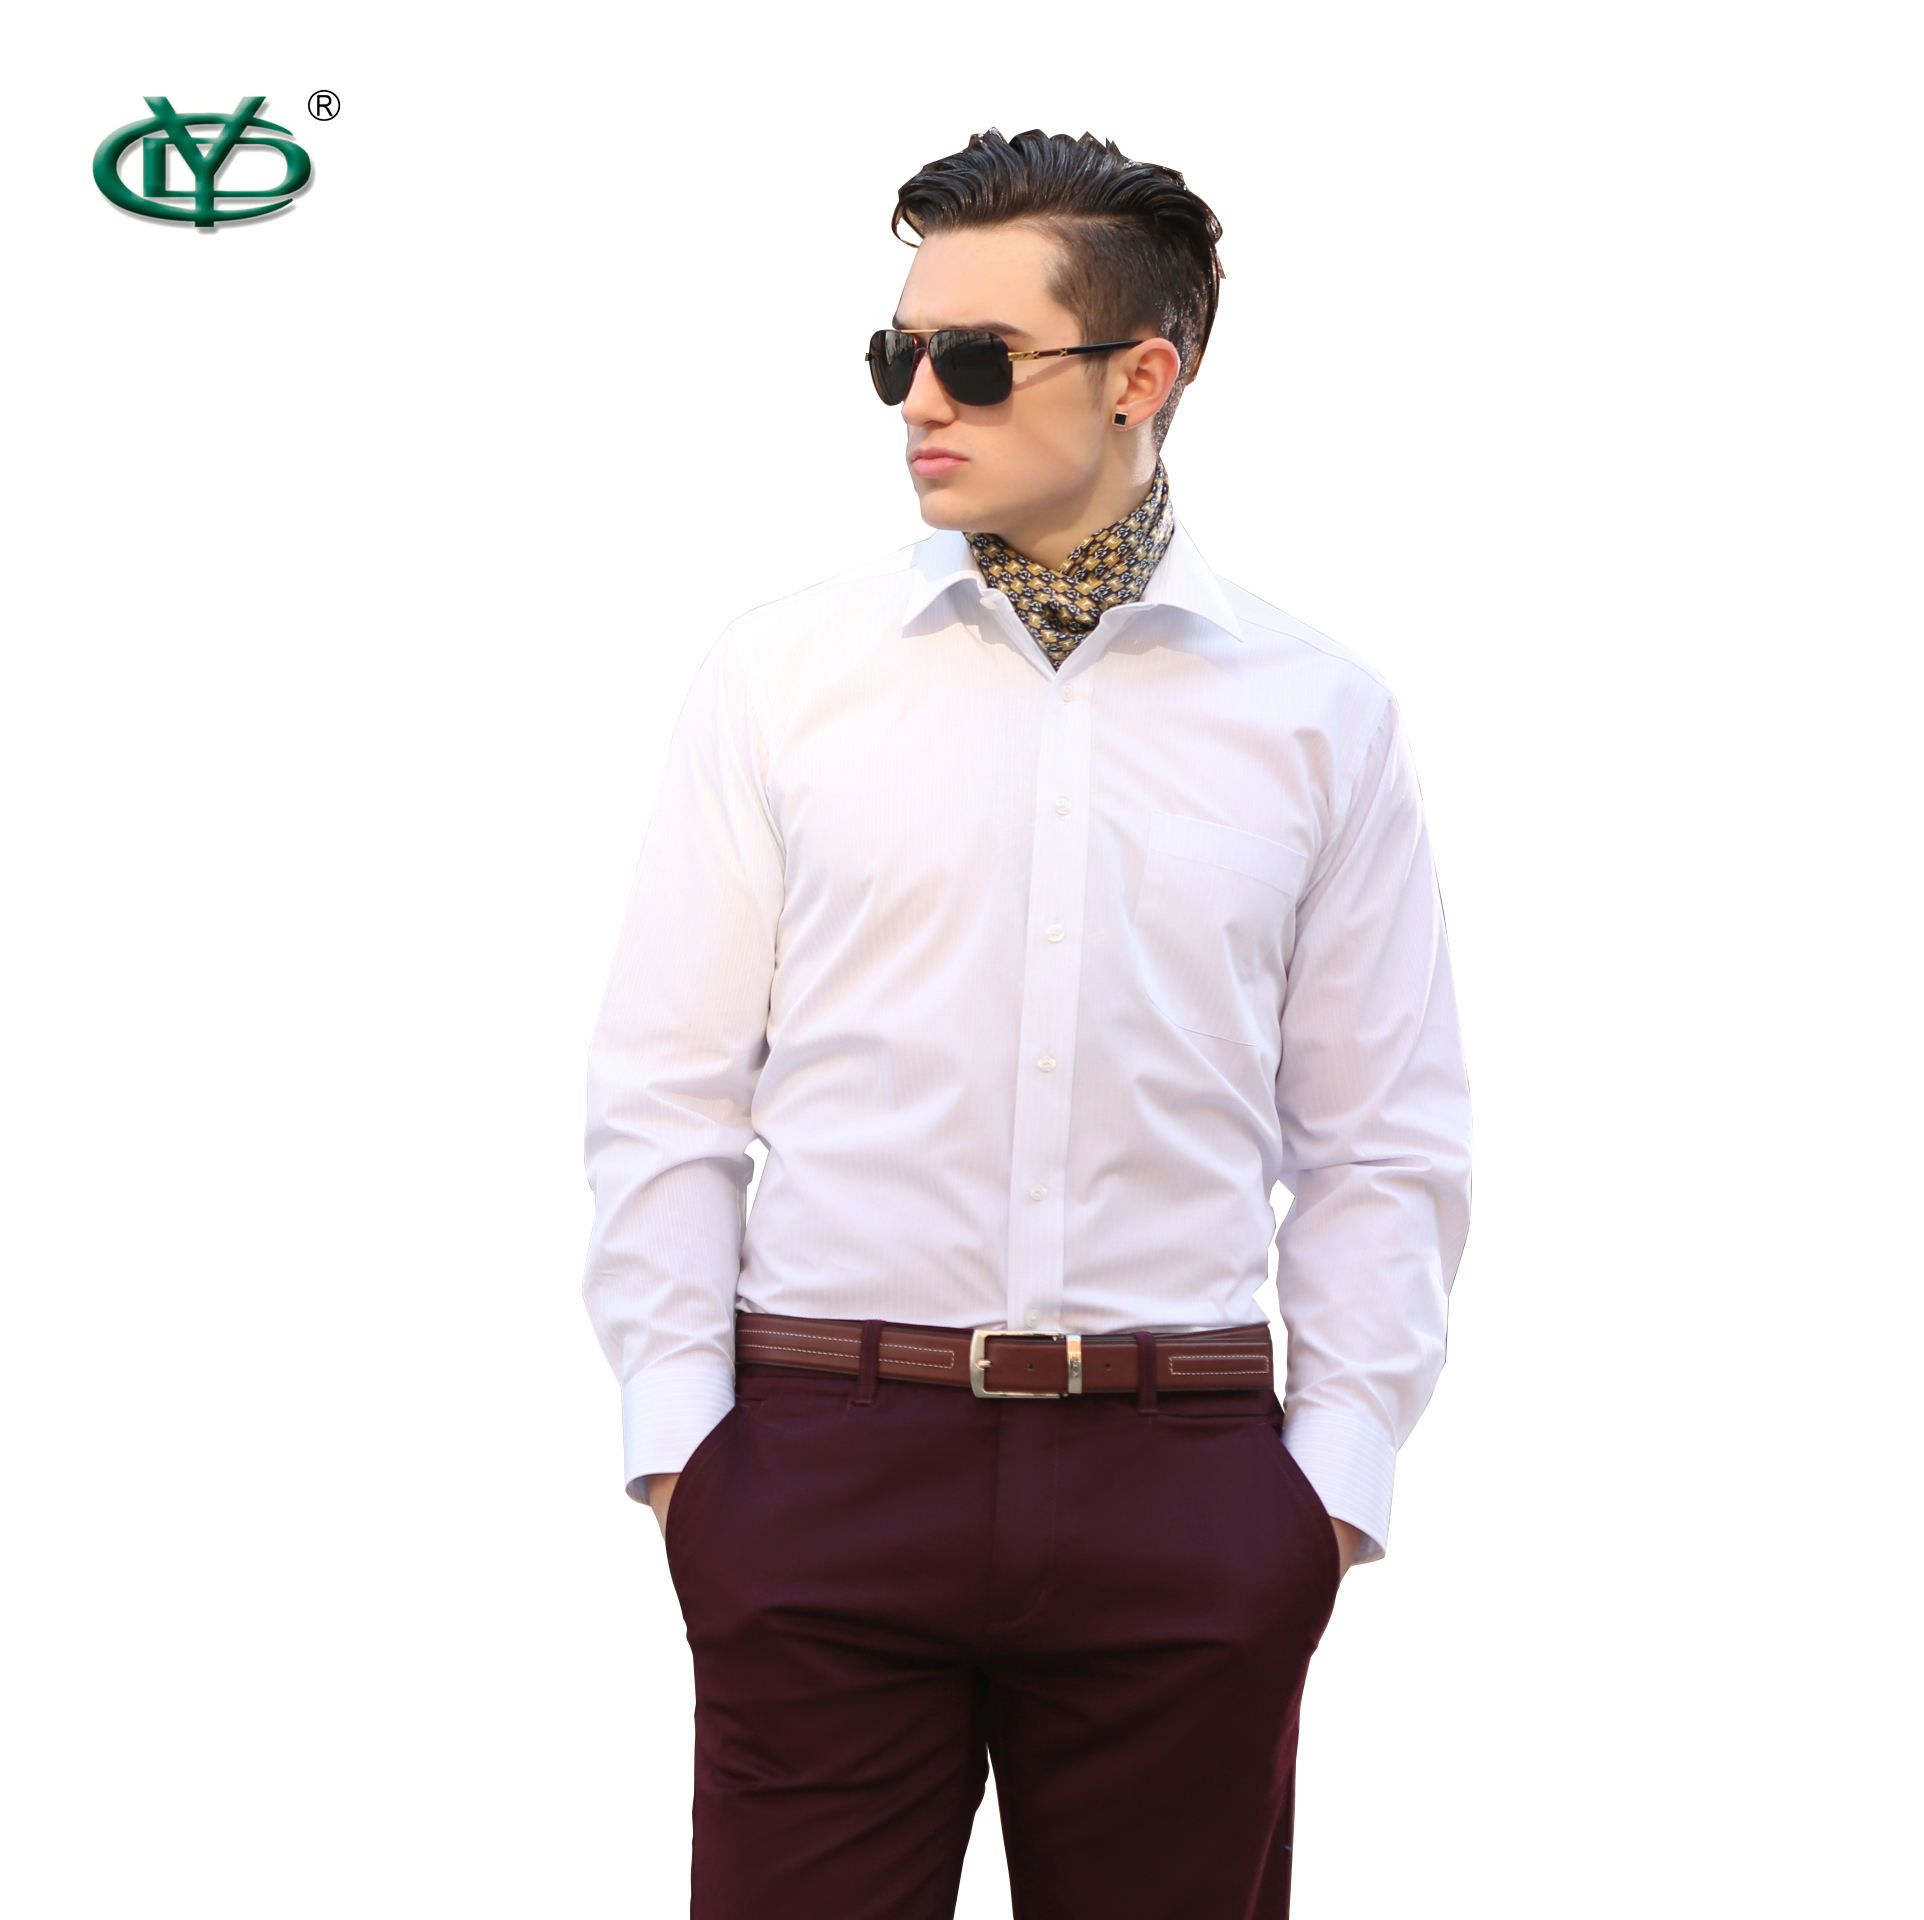 Design Shirt Men High Quality High Classic Cotton Men Dress Shirts Customized